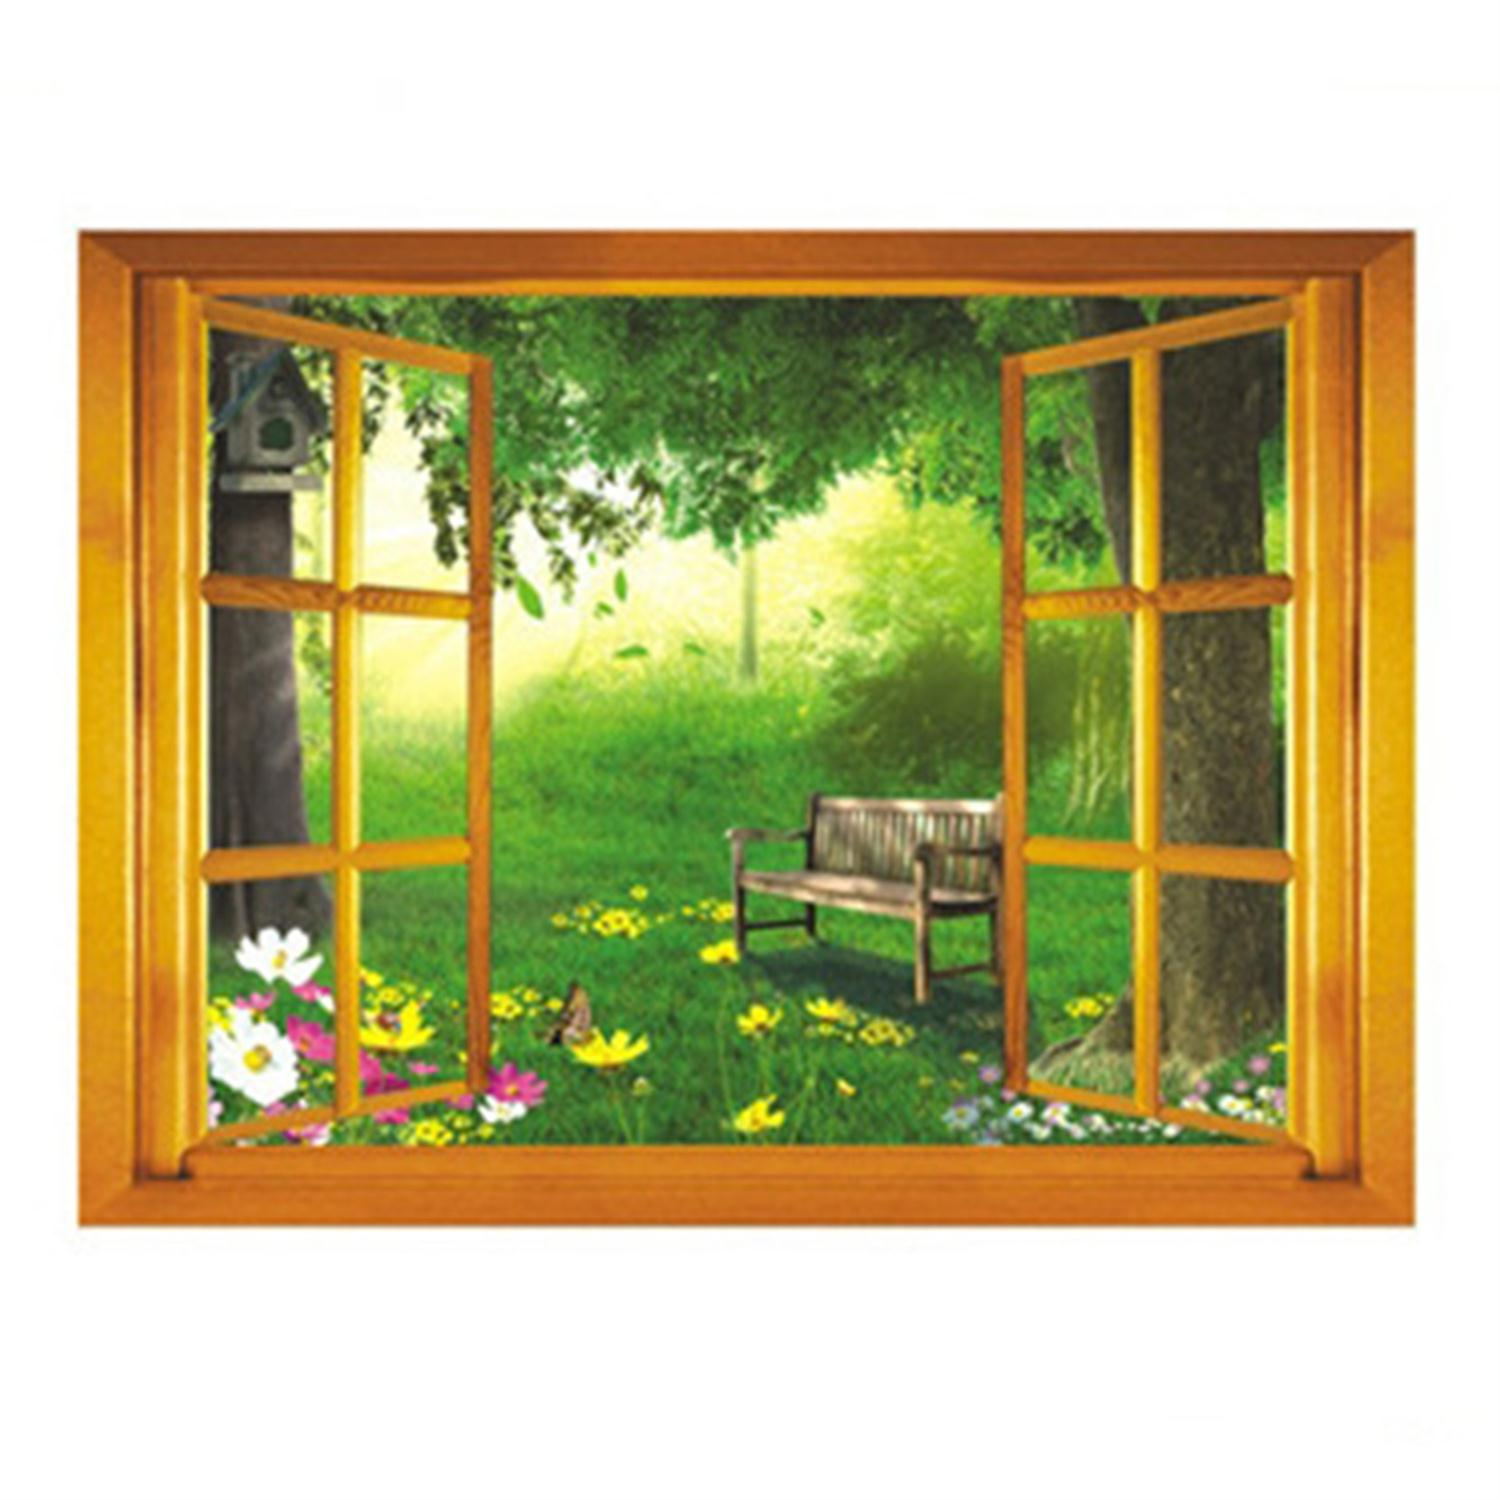 Fantastic Green Wonderland Nature Landscape 3D Wall Stickers Removable Creative Window Wall Sticker For Home Decoration Decals(China (Mainland))